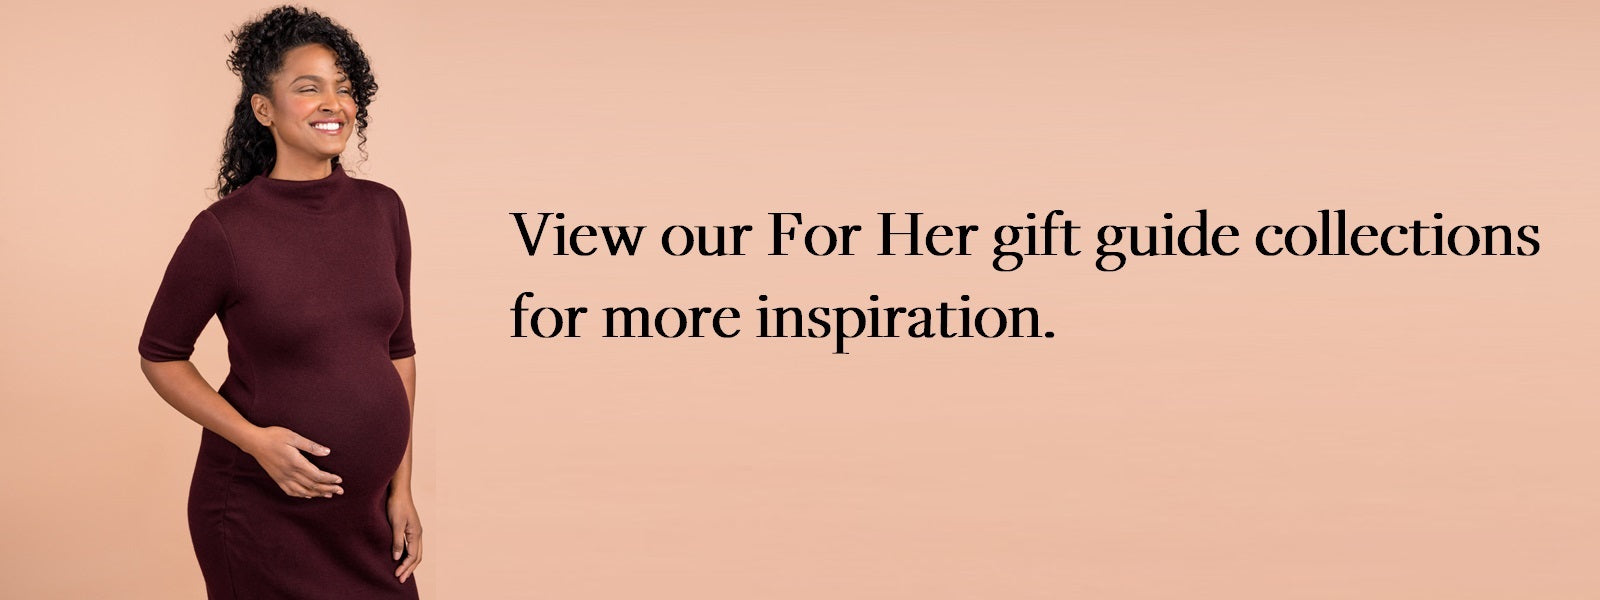 View our For Her and Giving Warmth gift guide collections for more inspiration.